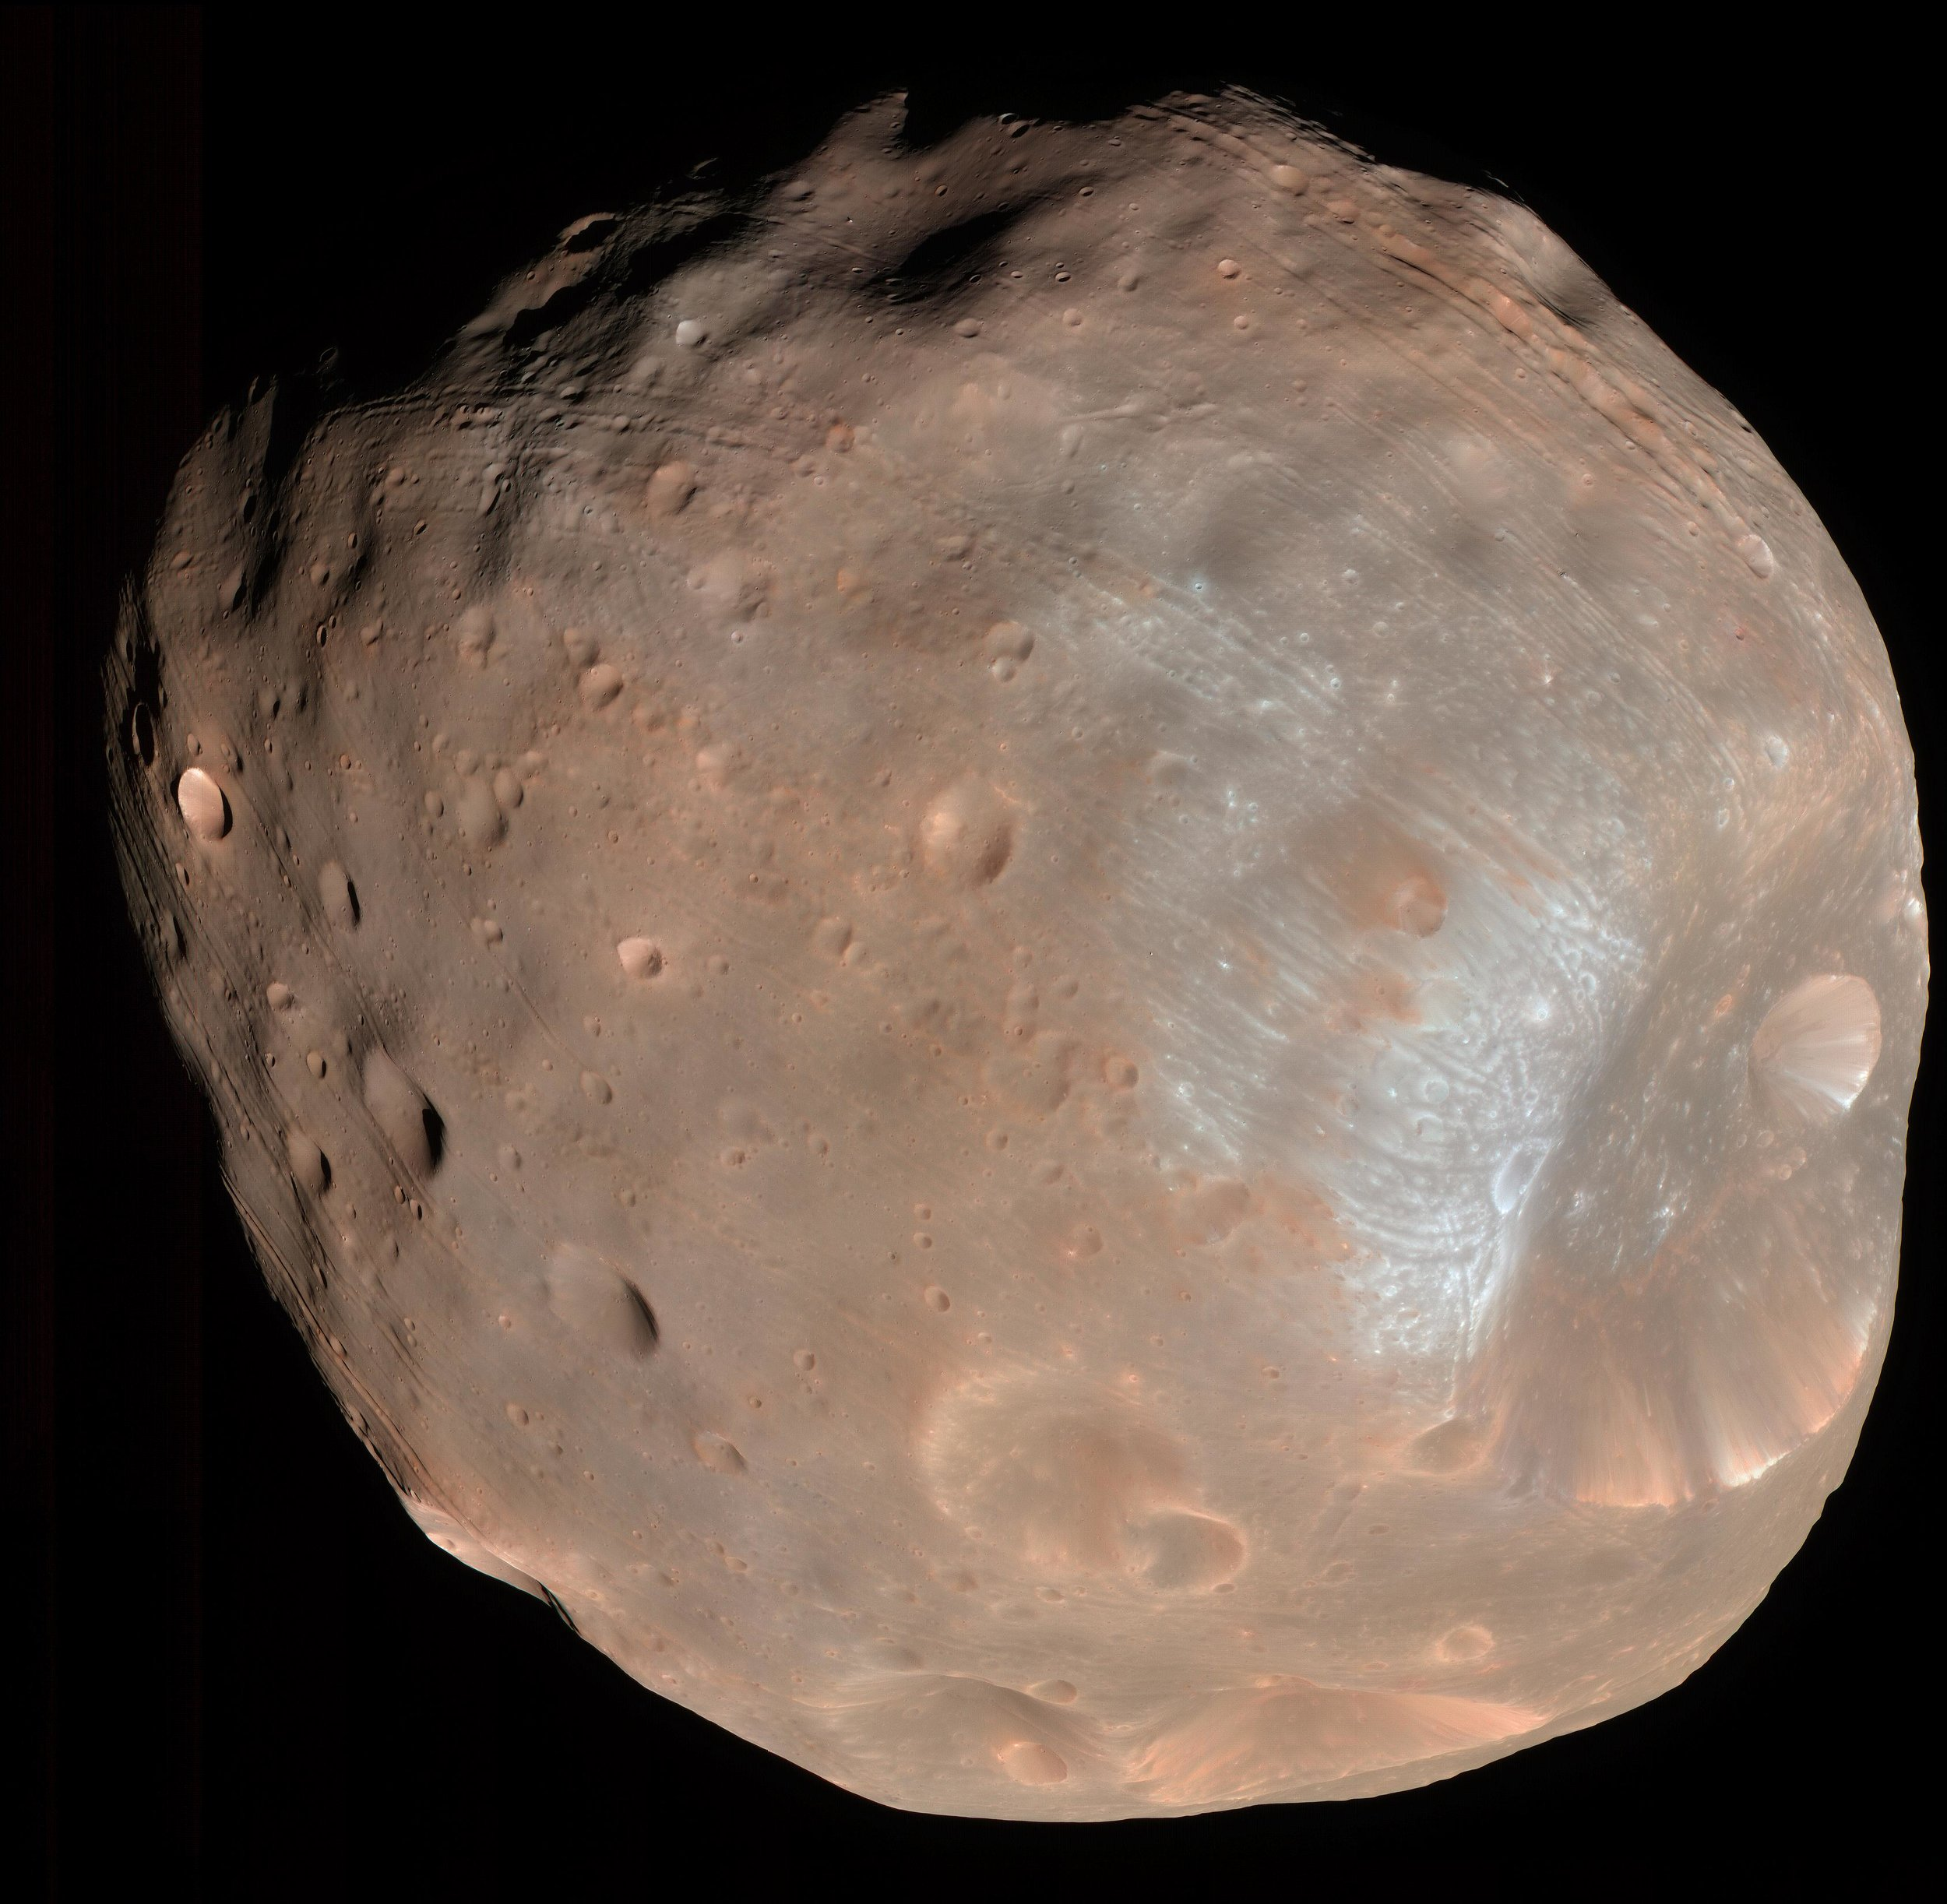 Mars moon Phobos sports linear grooves and crater chains whose origin has never explained. - Image Credit: NASA/JPL